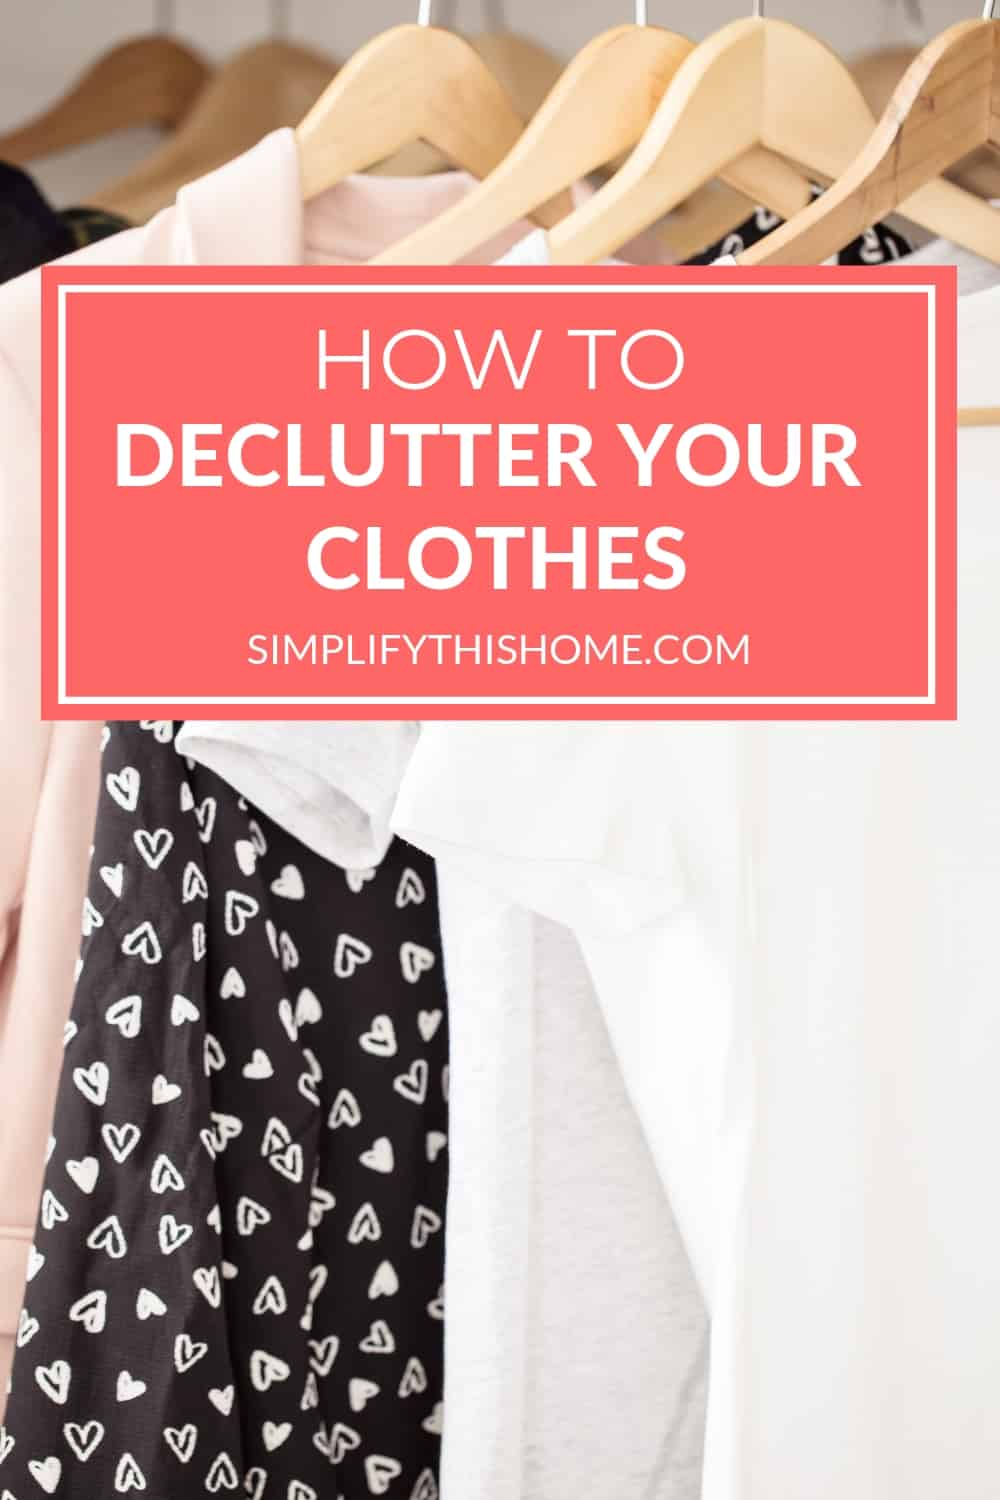 Decluttering clothes doesn't have to be overwhelming. These tips will help you declutter your clothes like a pro without feeling overwhelmed or getting burned out! | decluttering tips